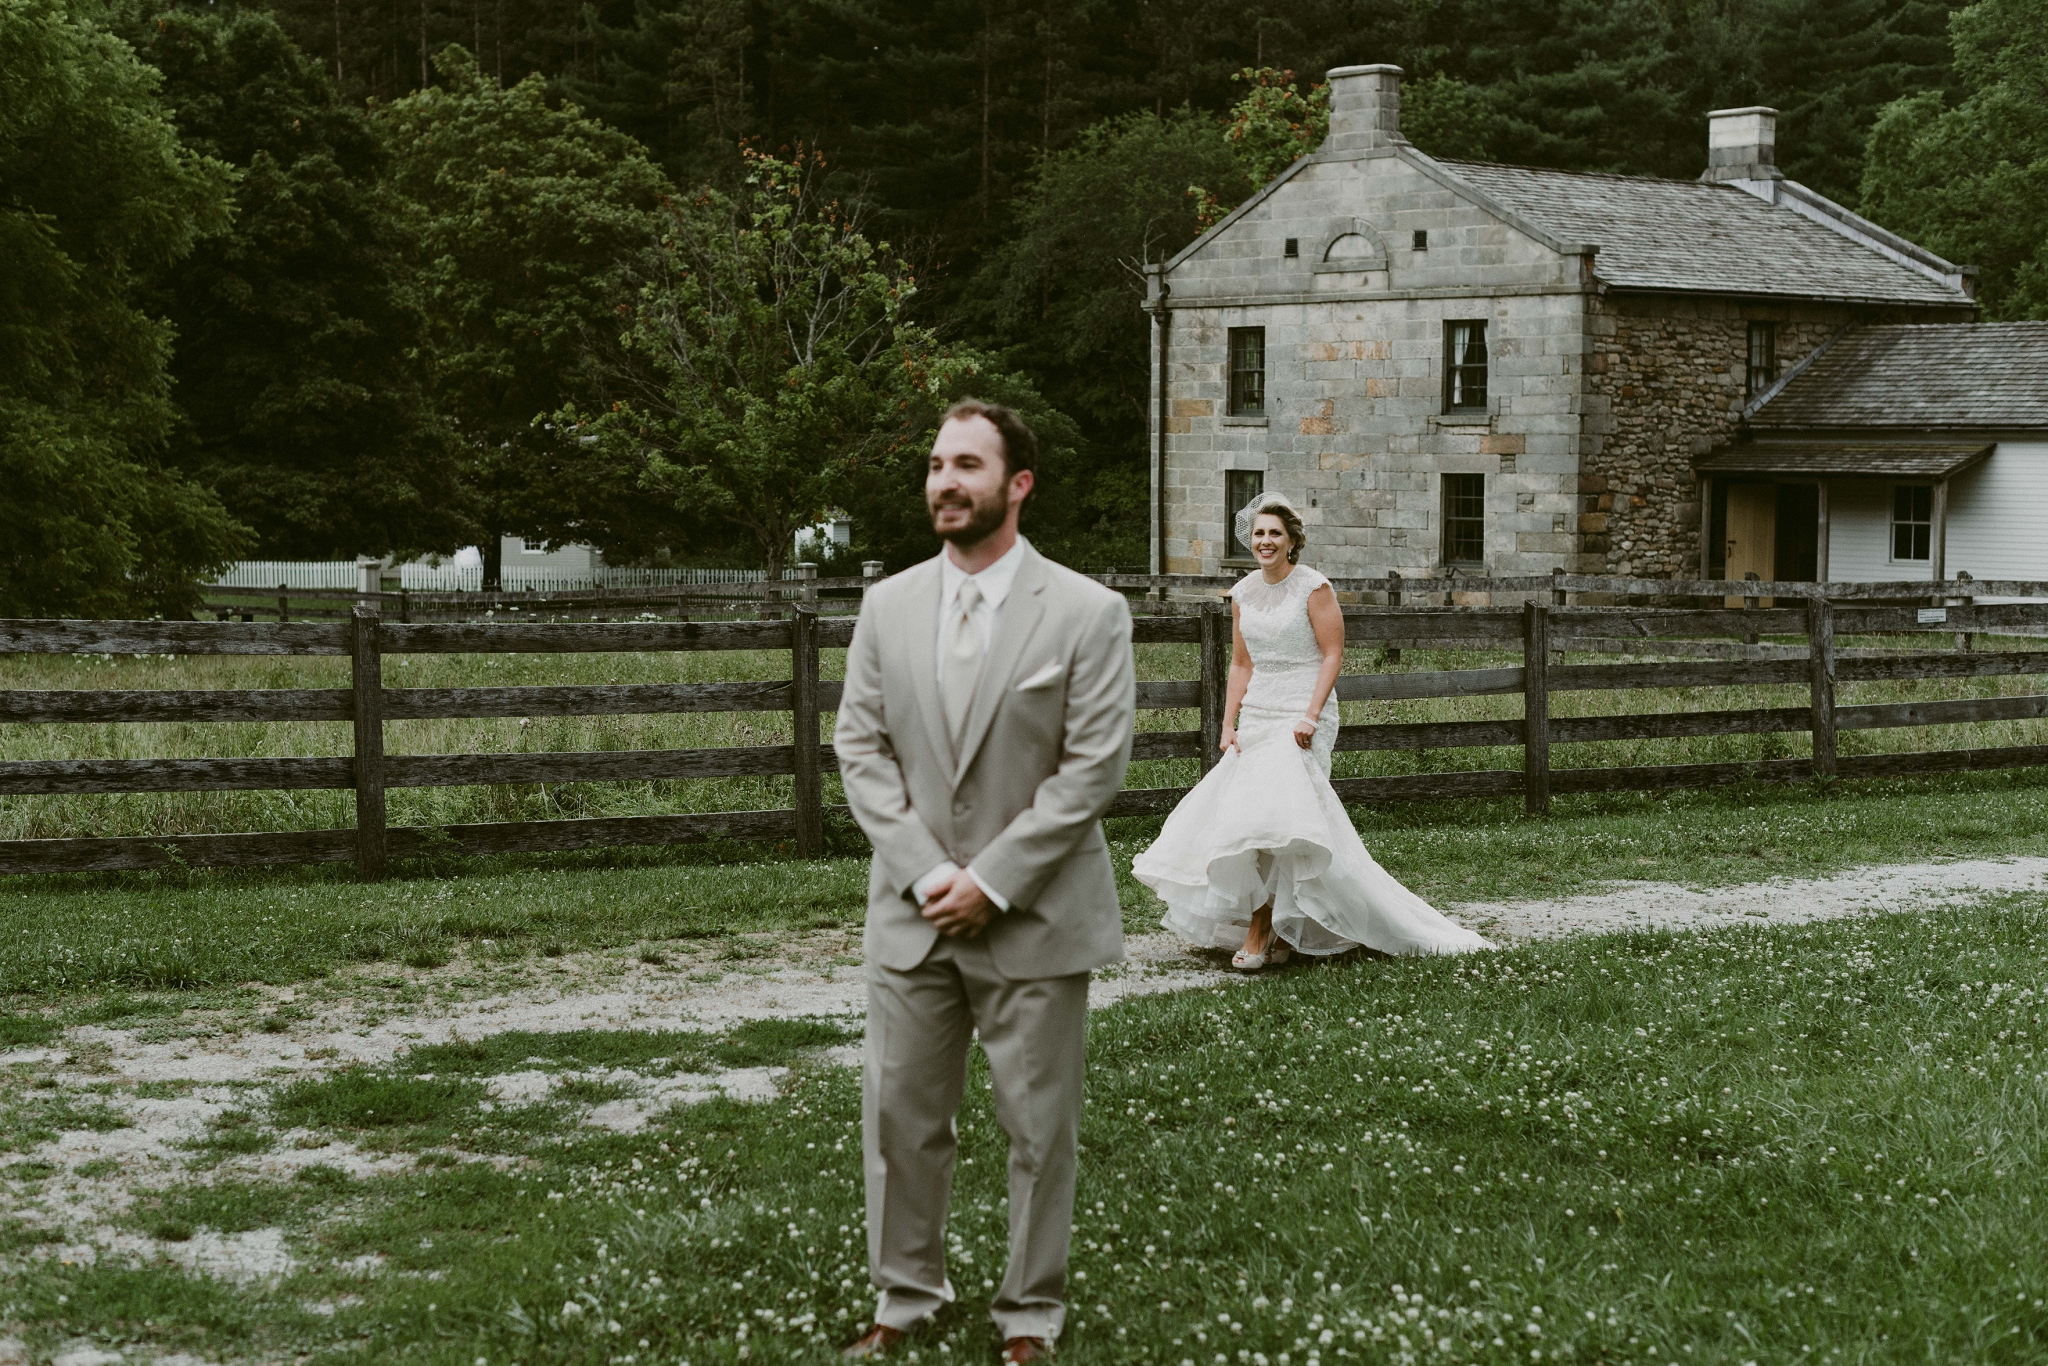 Hines-Hill-Farm-Cuyahoga-Valley-National-Park-Wedding_Emi+Andy_MJPHOTO-75.jpg